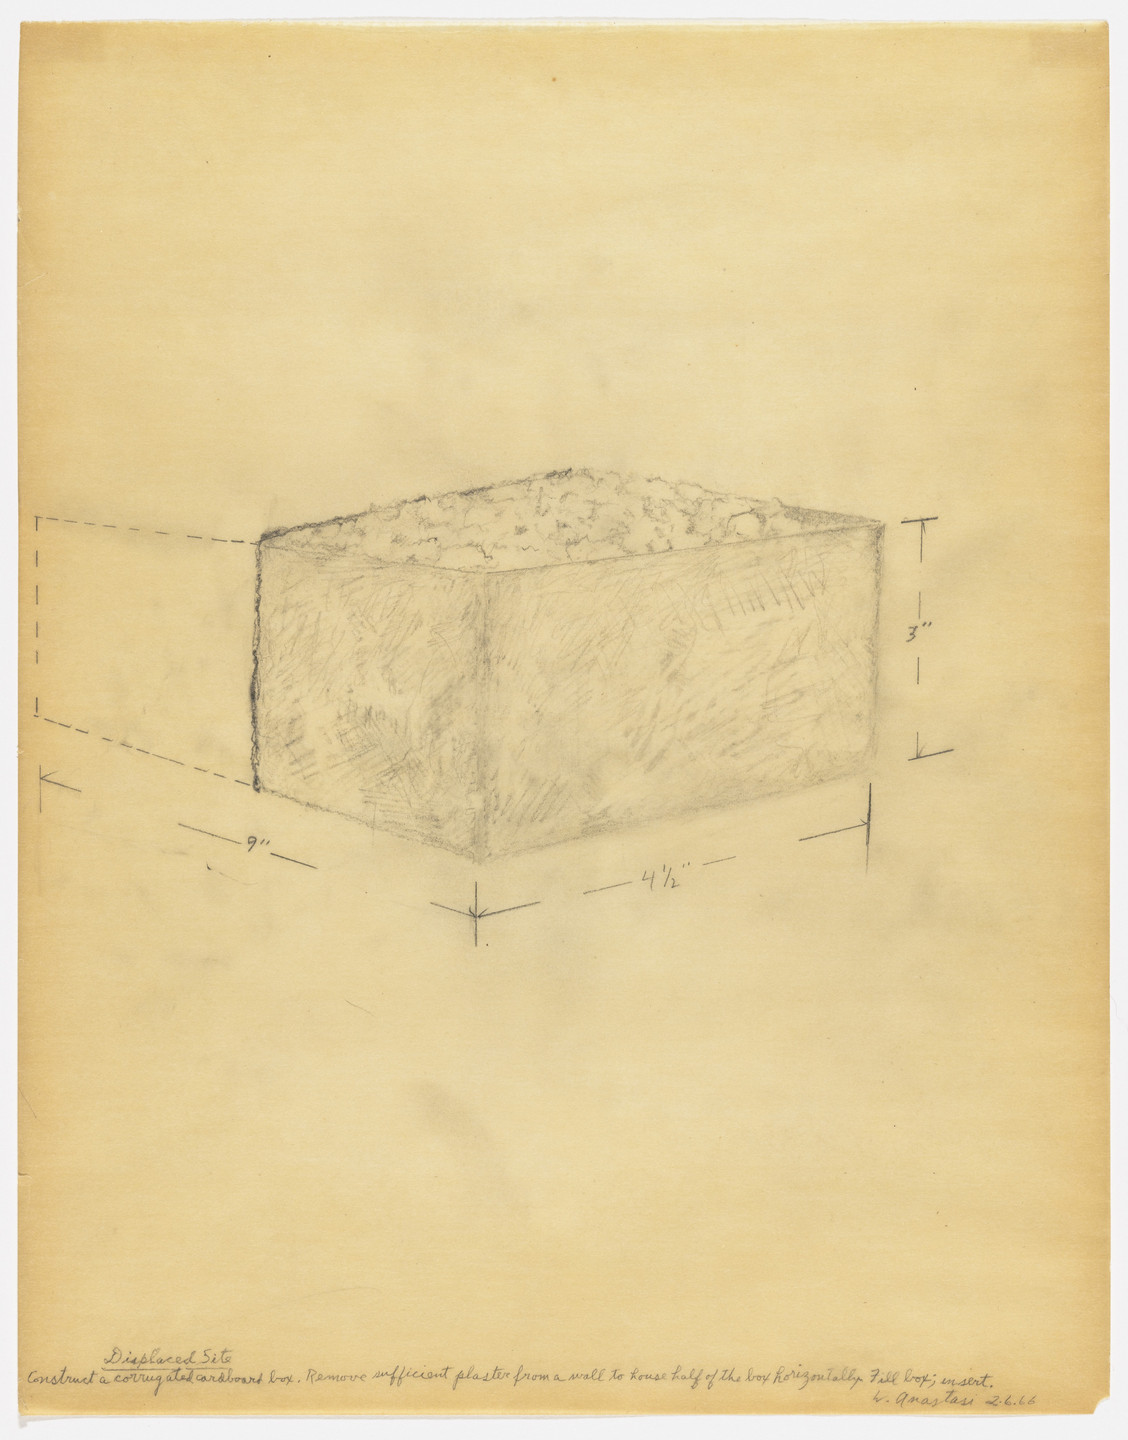 William Anastasi. Displaced Site. 1966